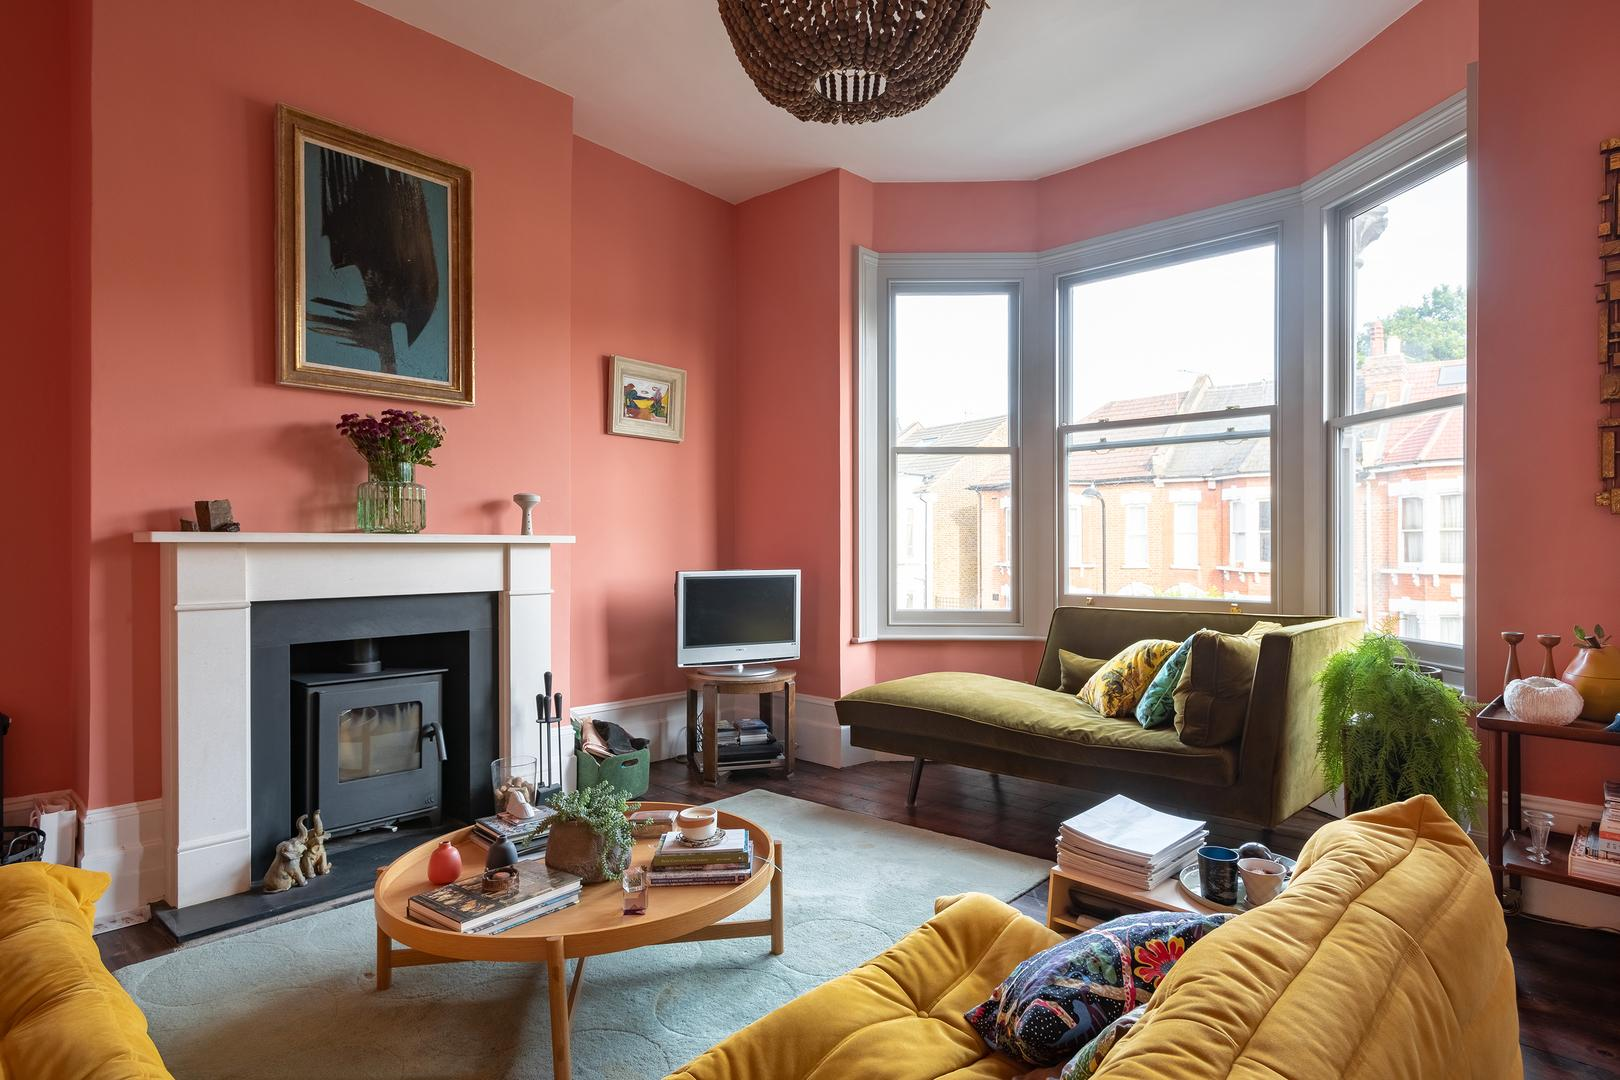 Property Image 2 - Artistic Residence by Clissold Park in Stoke Newington